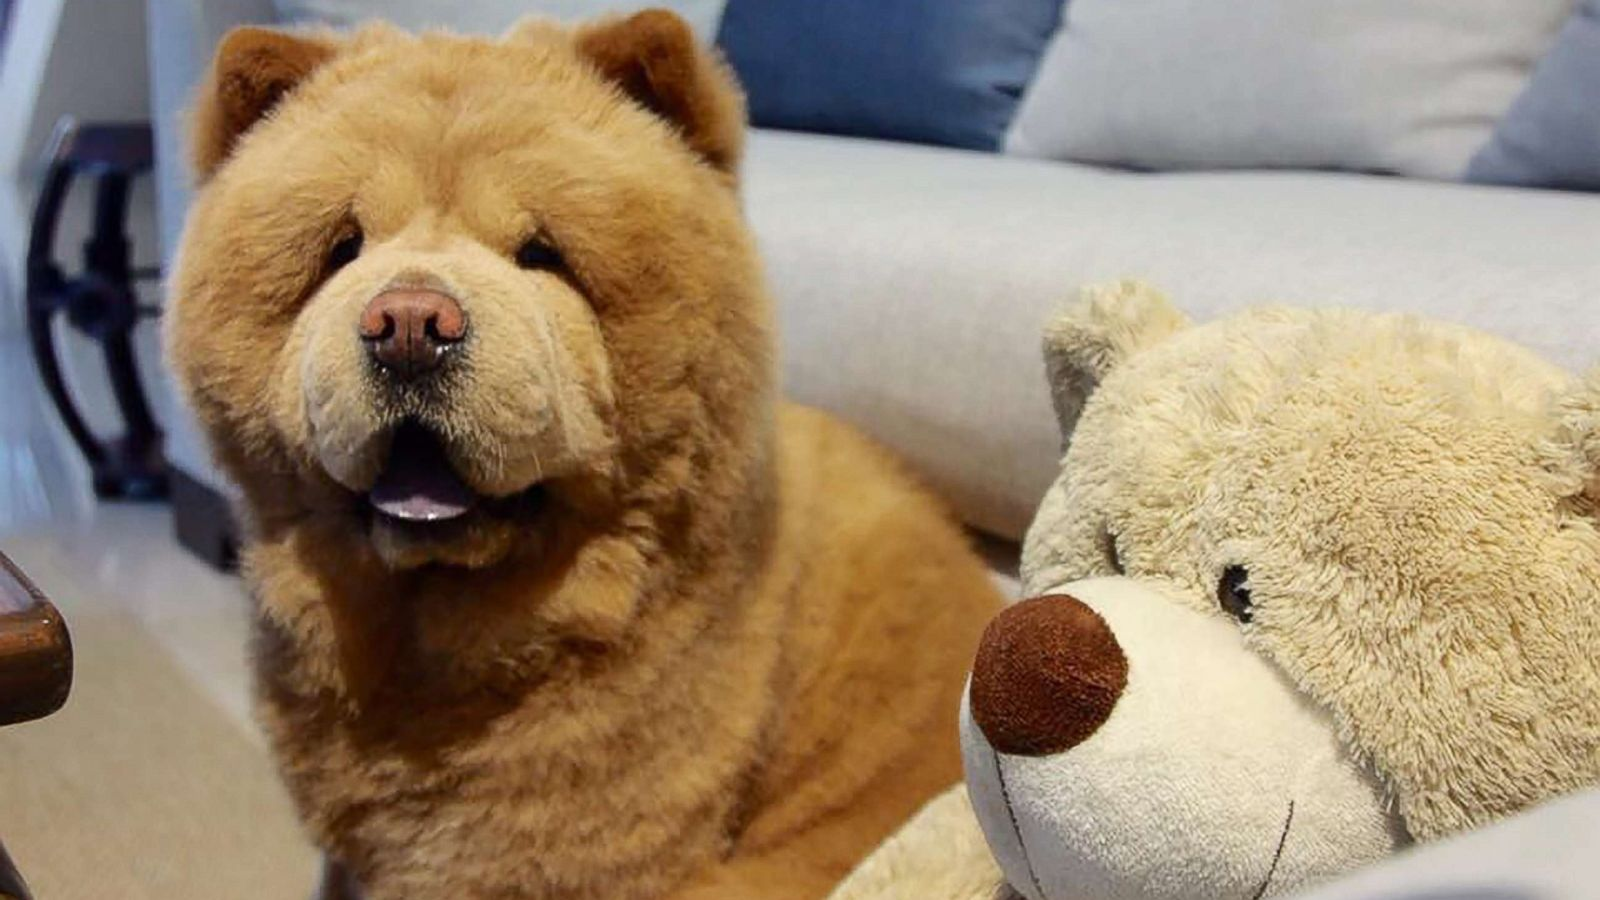 fluffy dog that resembles bear takes social media by storm abc news